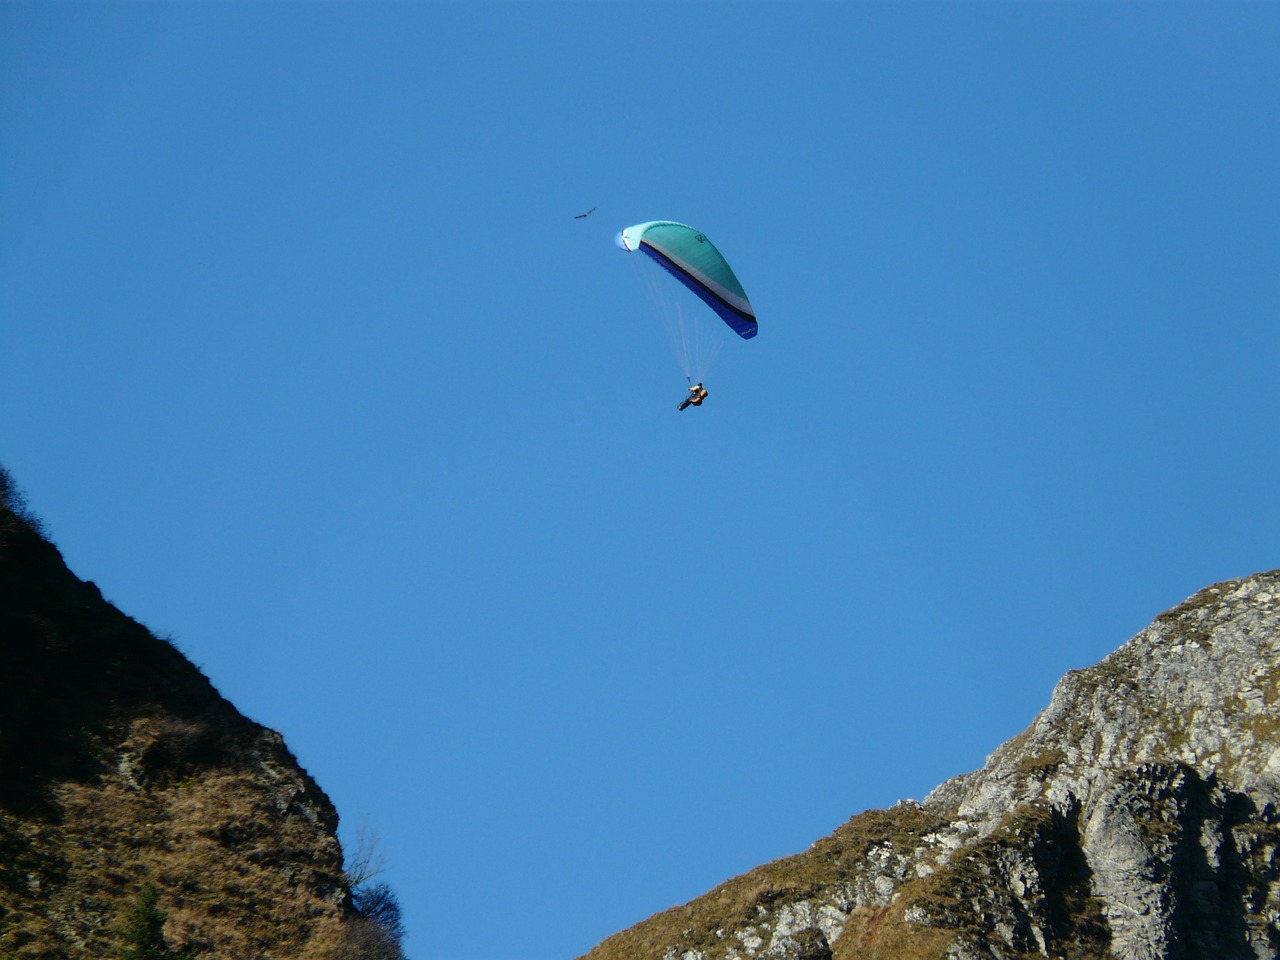 paraglider,paragliding,fly,screen,leisure,sport,hobby,sporty,adventurer,free pictures, free photos, free images, royalty free, free illustrations, public domain